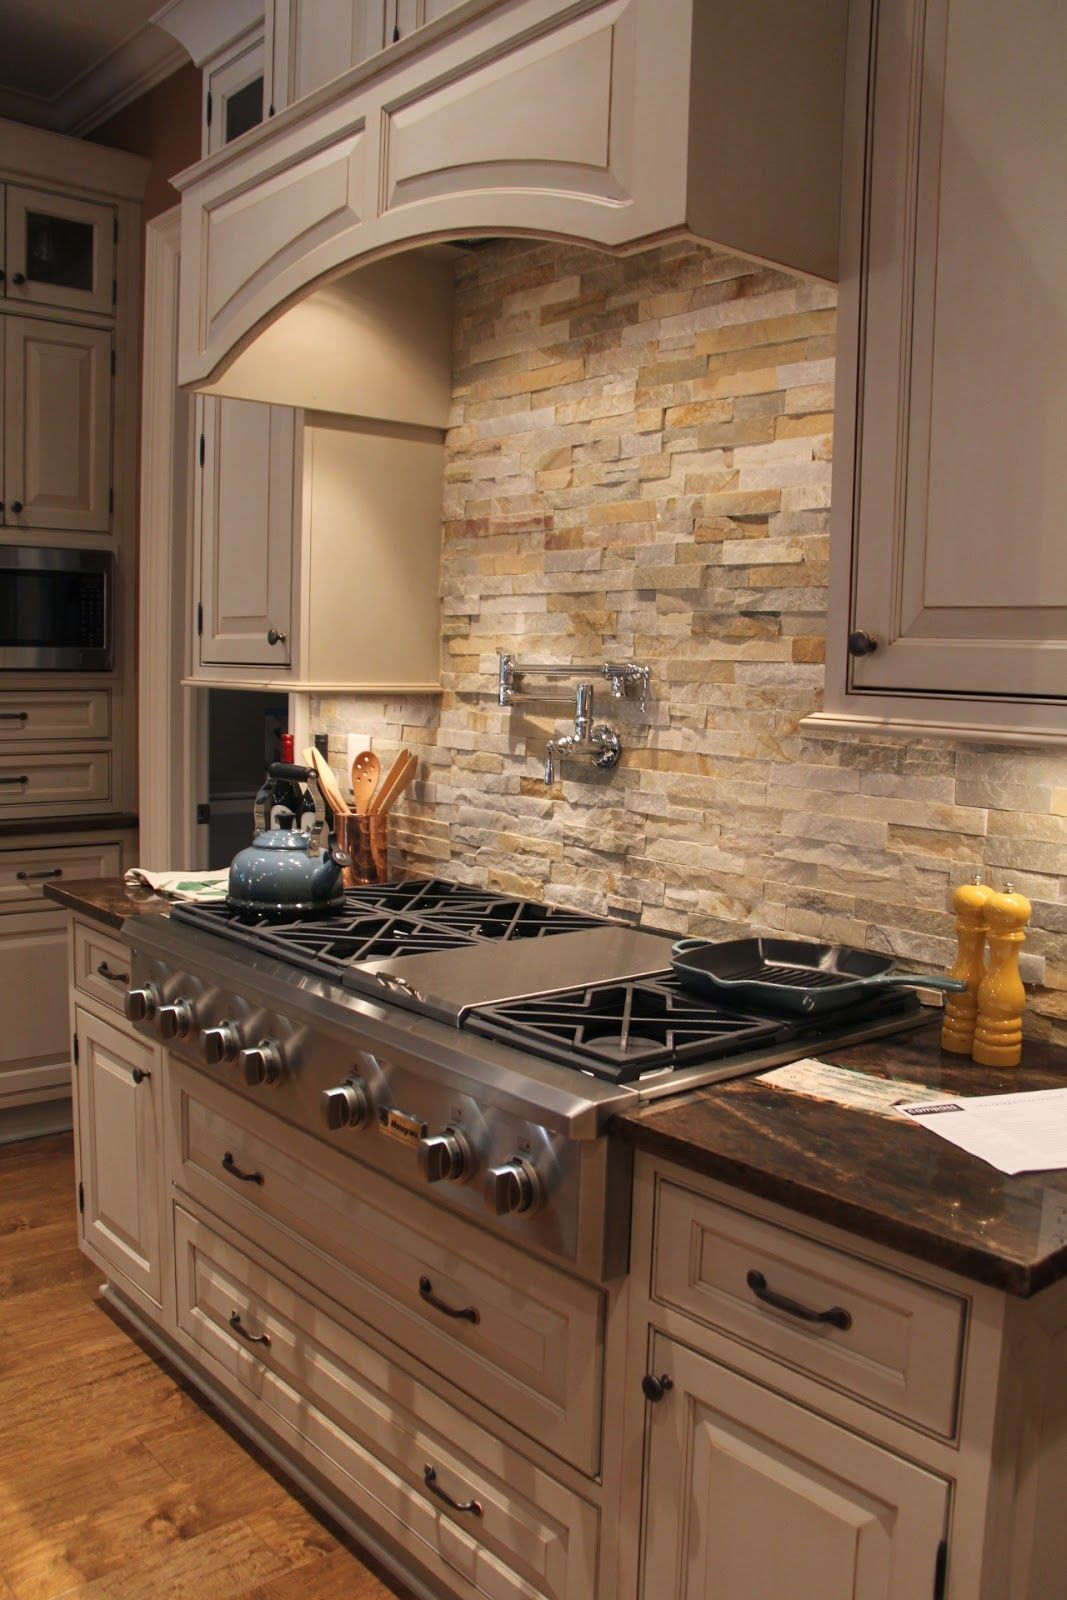 Stack Stone Kitchen Backsplash Ideas To Replace The In Our New House